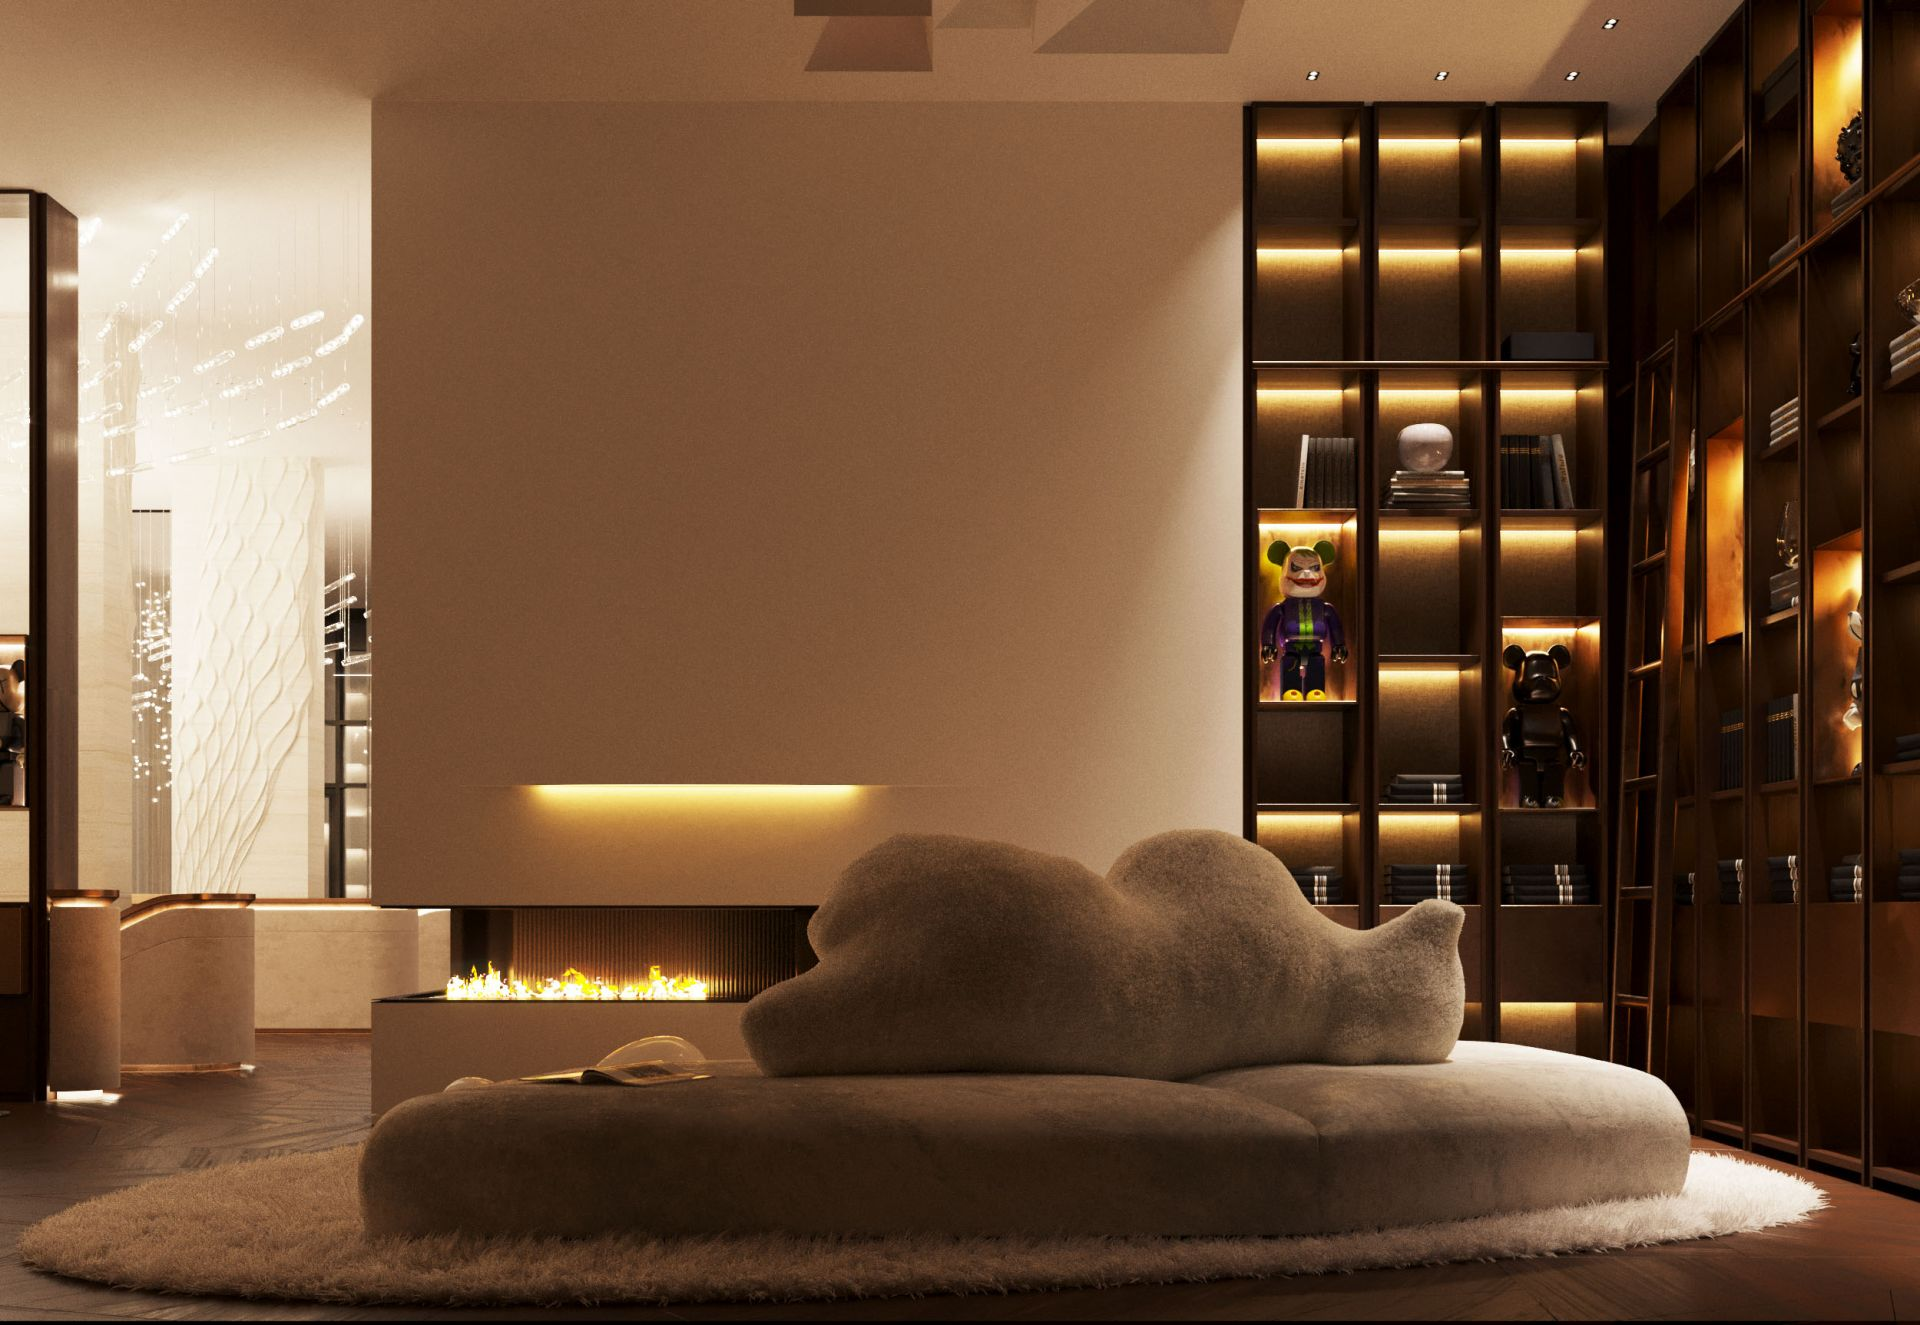 Art Place - Penthouse at Rostov On Don - image 1